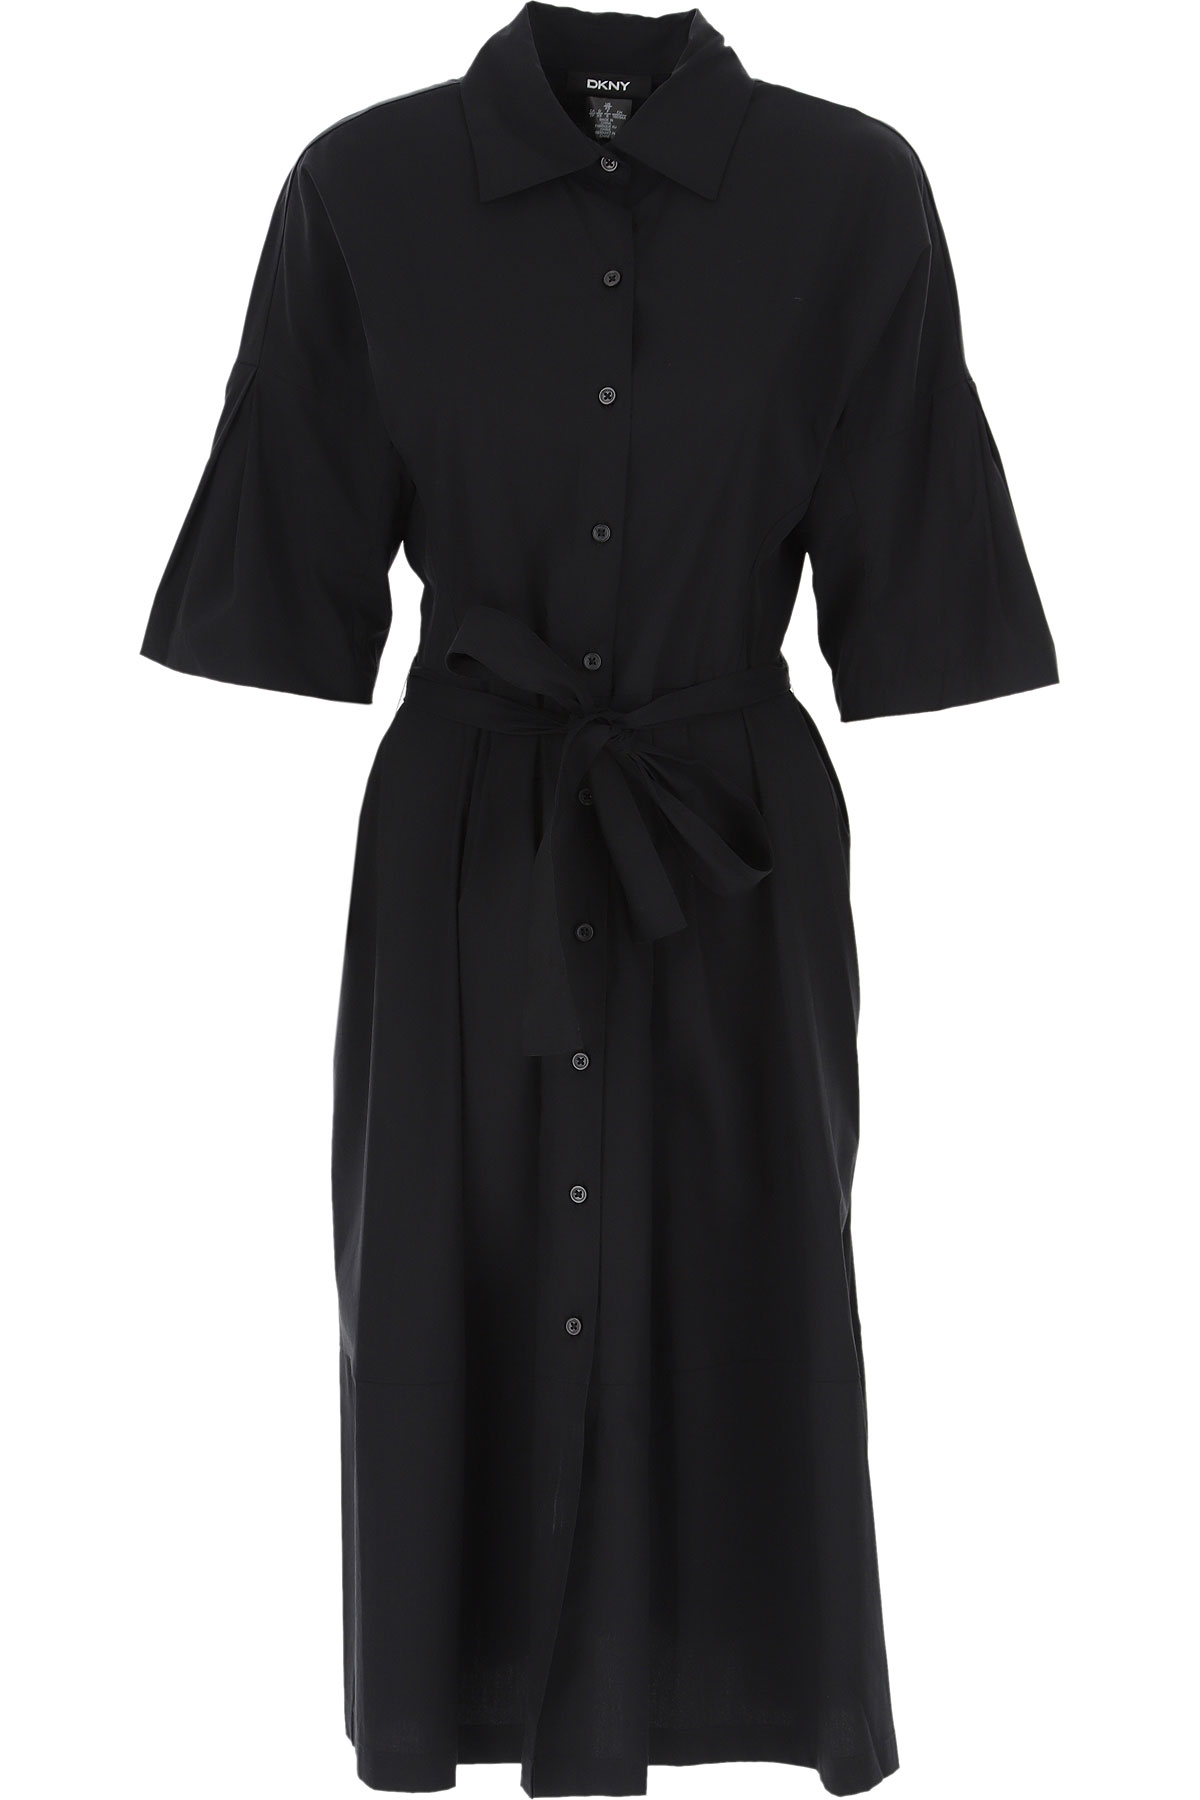 DKNY Dress for Women, Evening Cocktail Party On Sale, Black, Cotton, 2019, 2 4 6